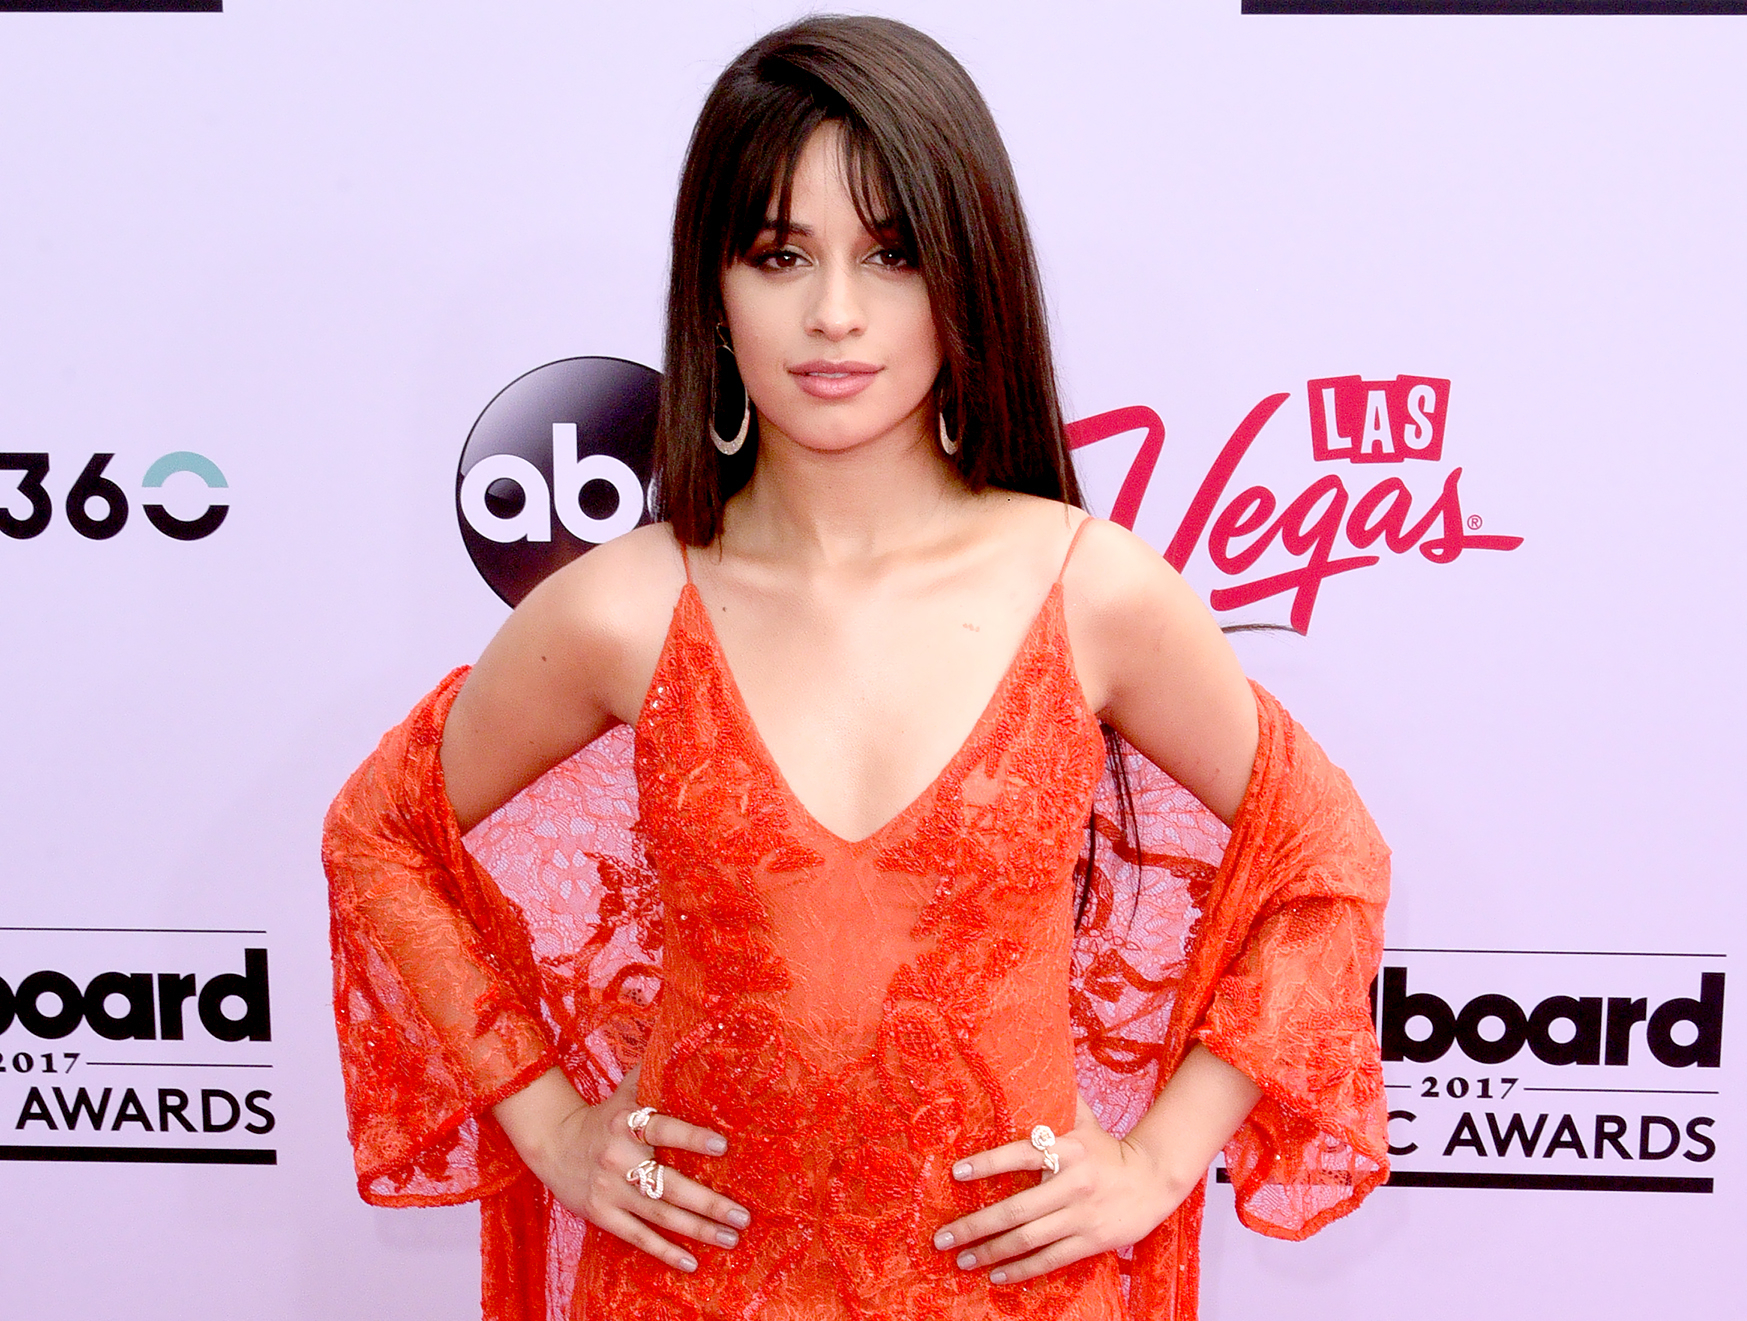 Camila Cabello attends the 2017 Billboard Music Awards at the T-Mobile Arena in Las Vegas on May 21, 2017.